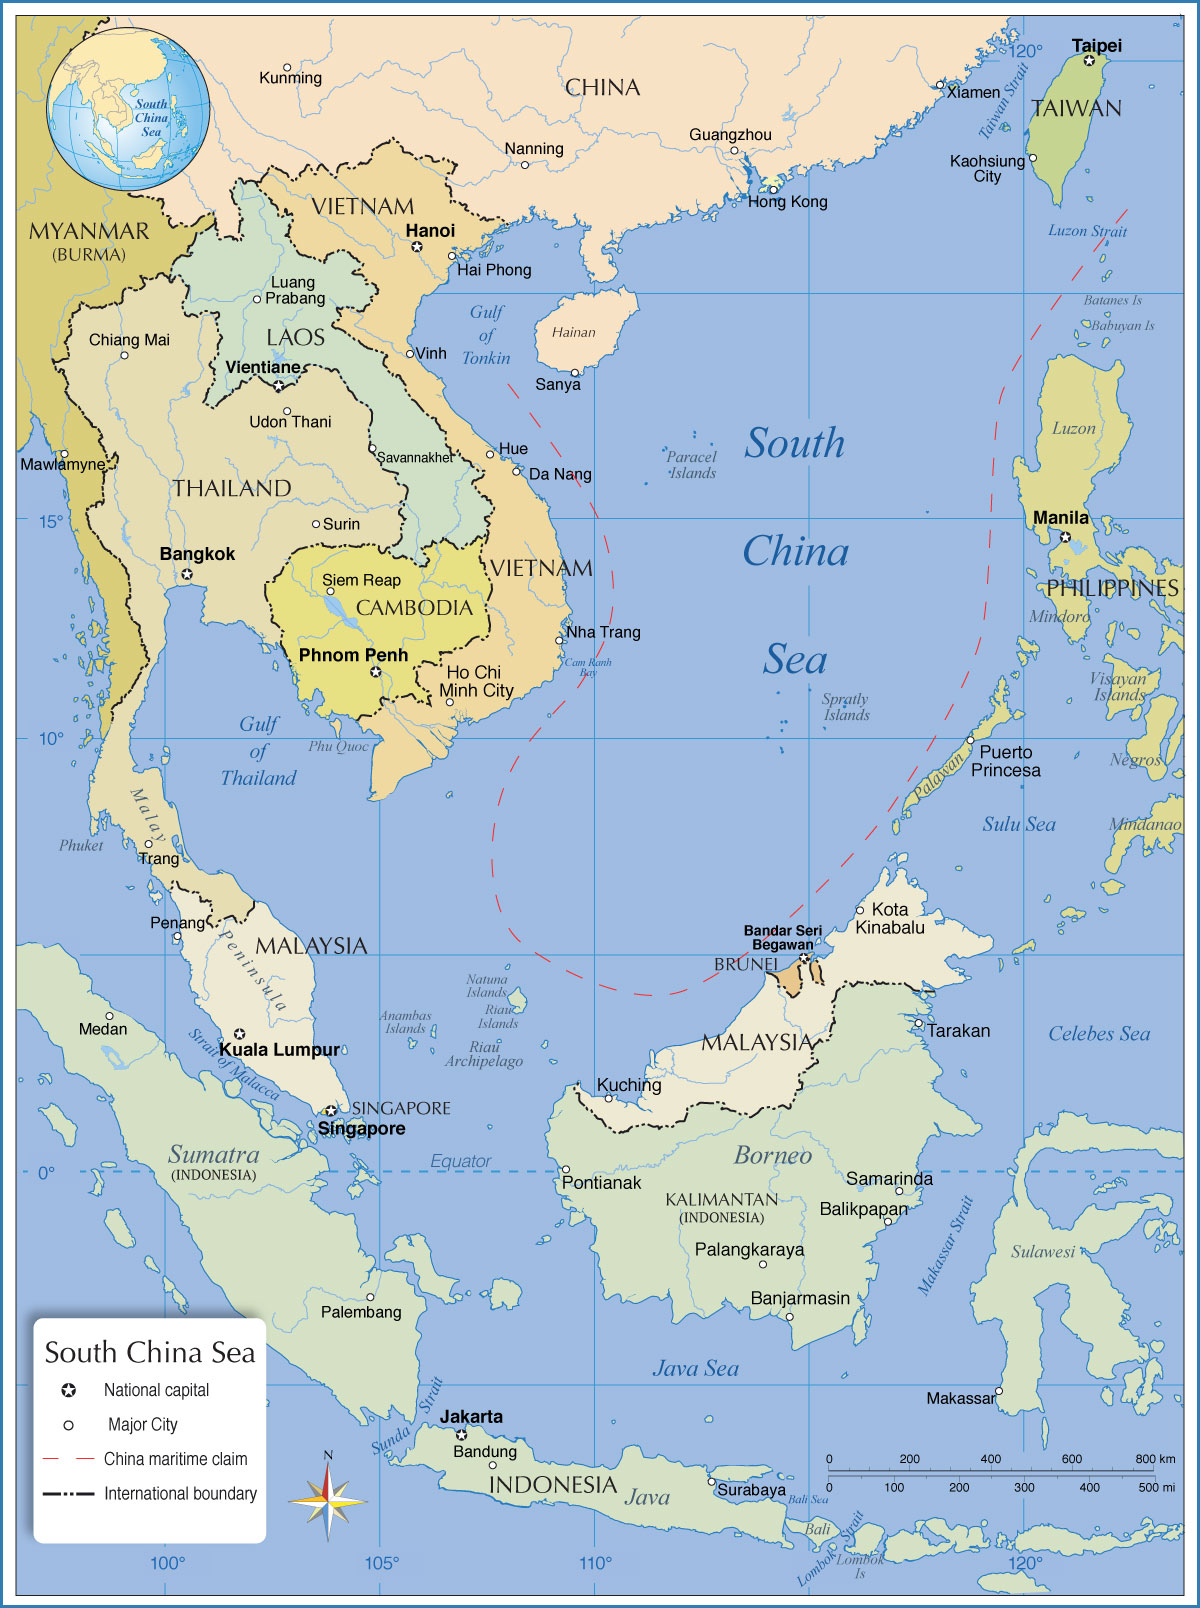 Asia Bodies Of Water Map : bodies, water, Political, South, China, Nations, Online, Project